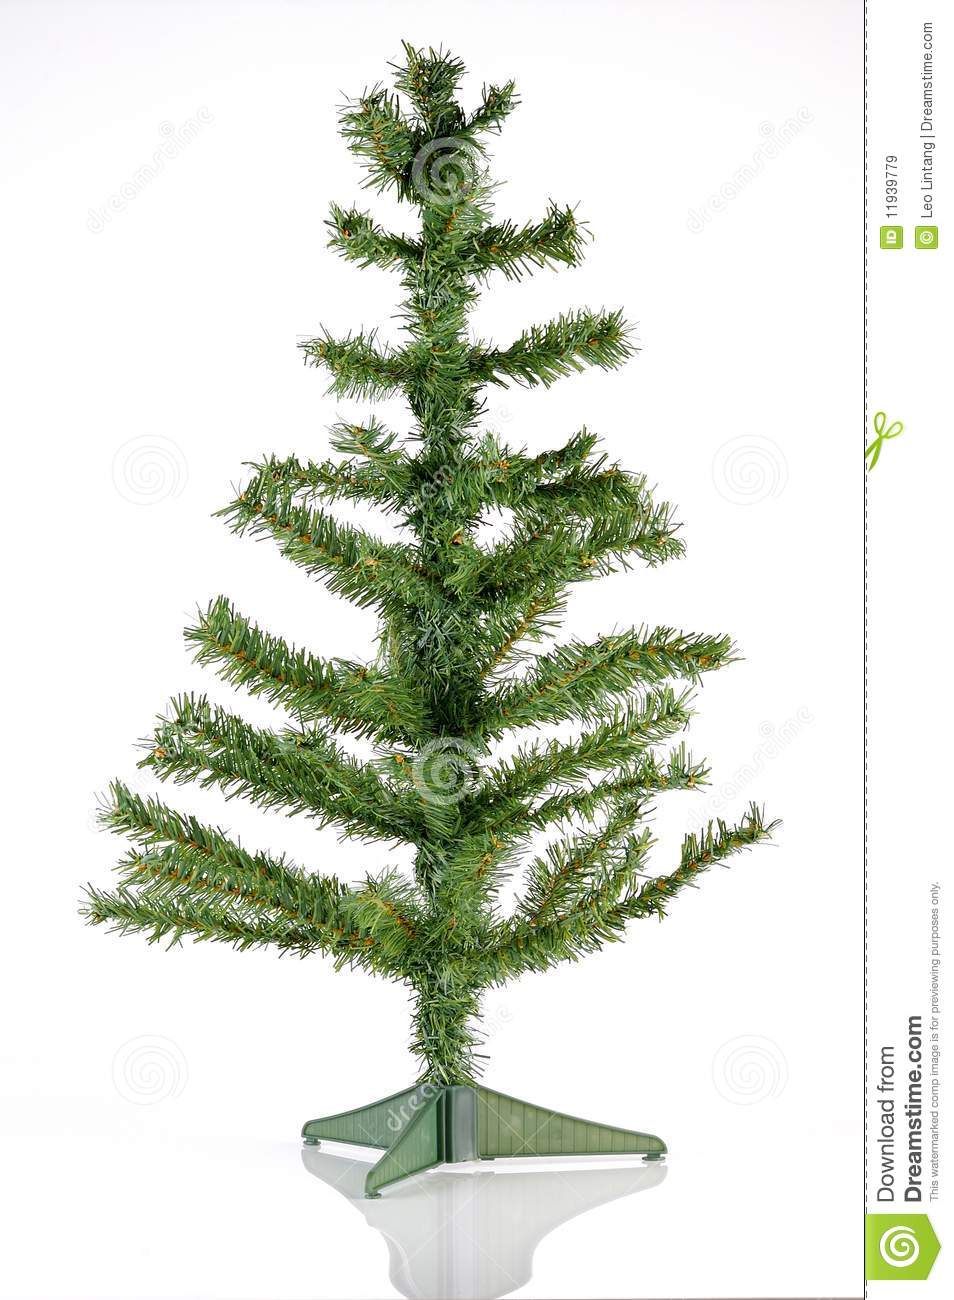 Bare Christmas Tree Royalty Free Stock Images - Image ...